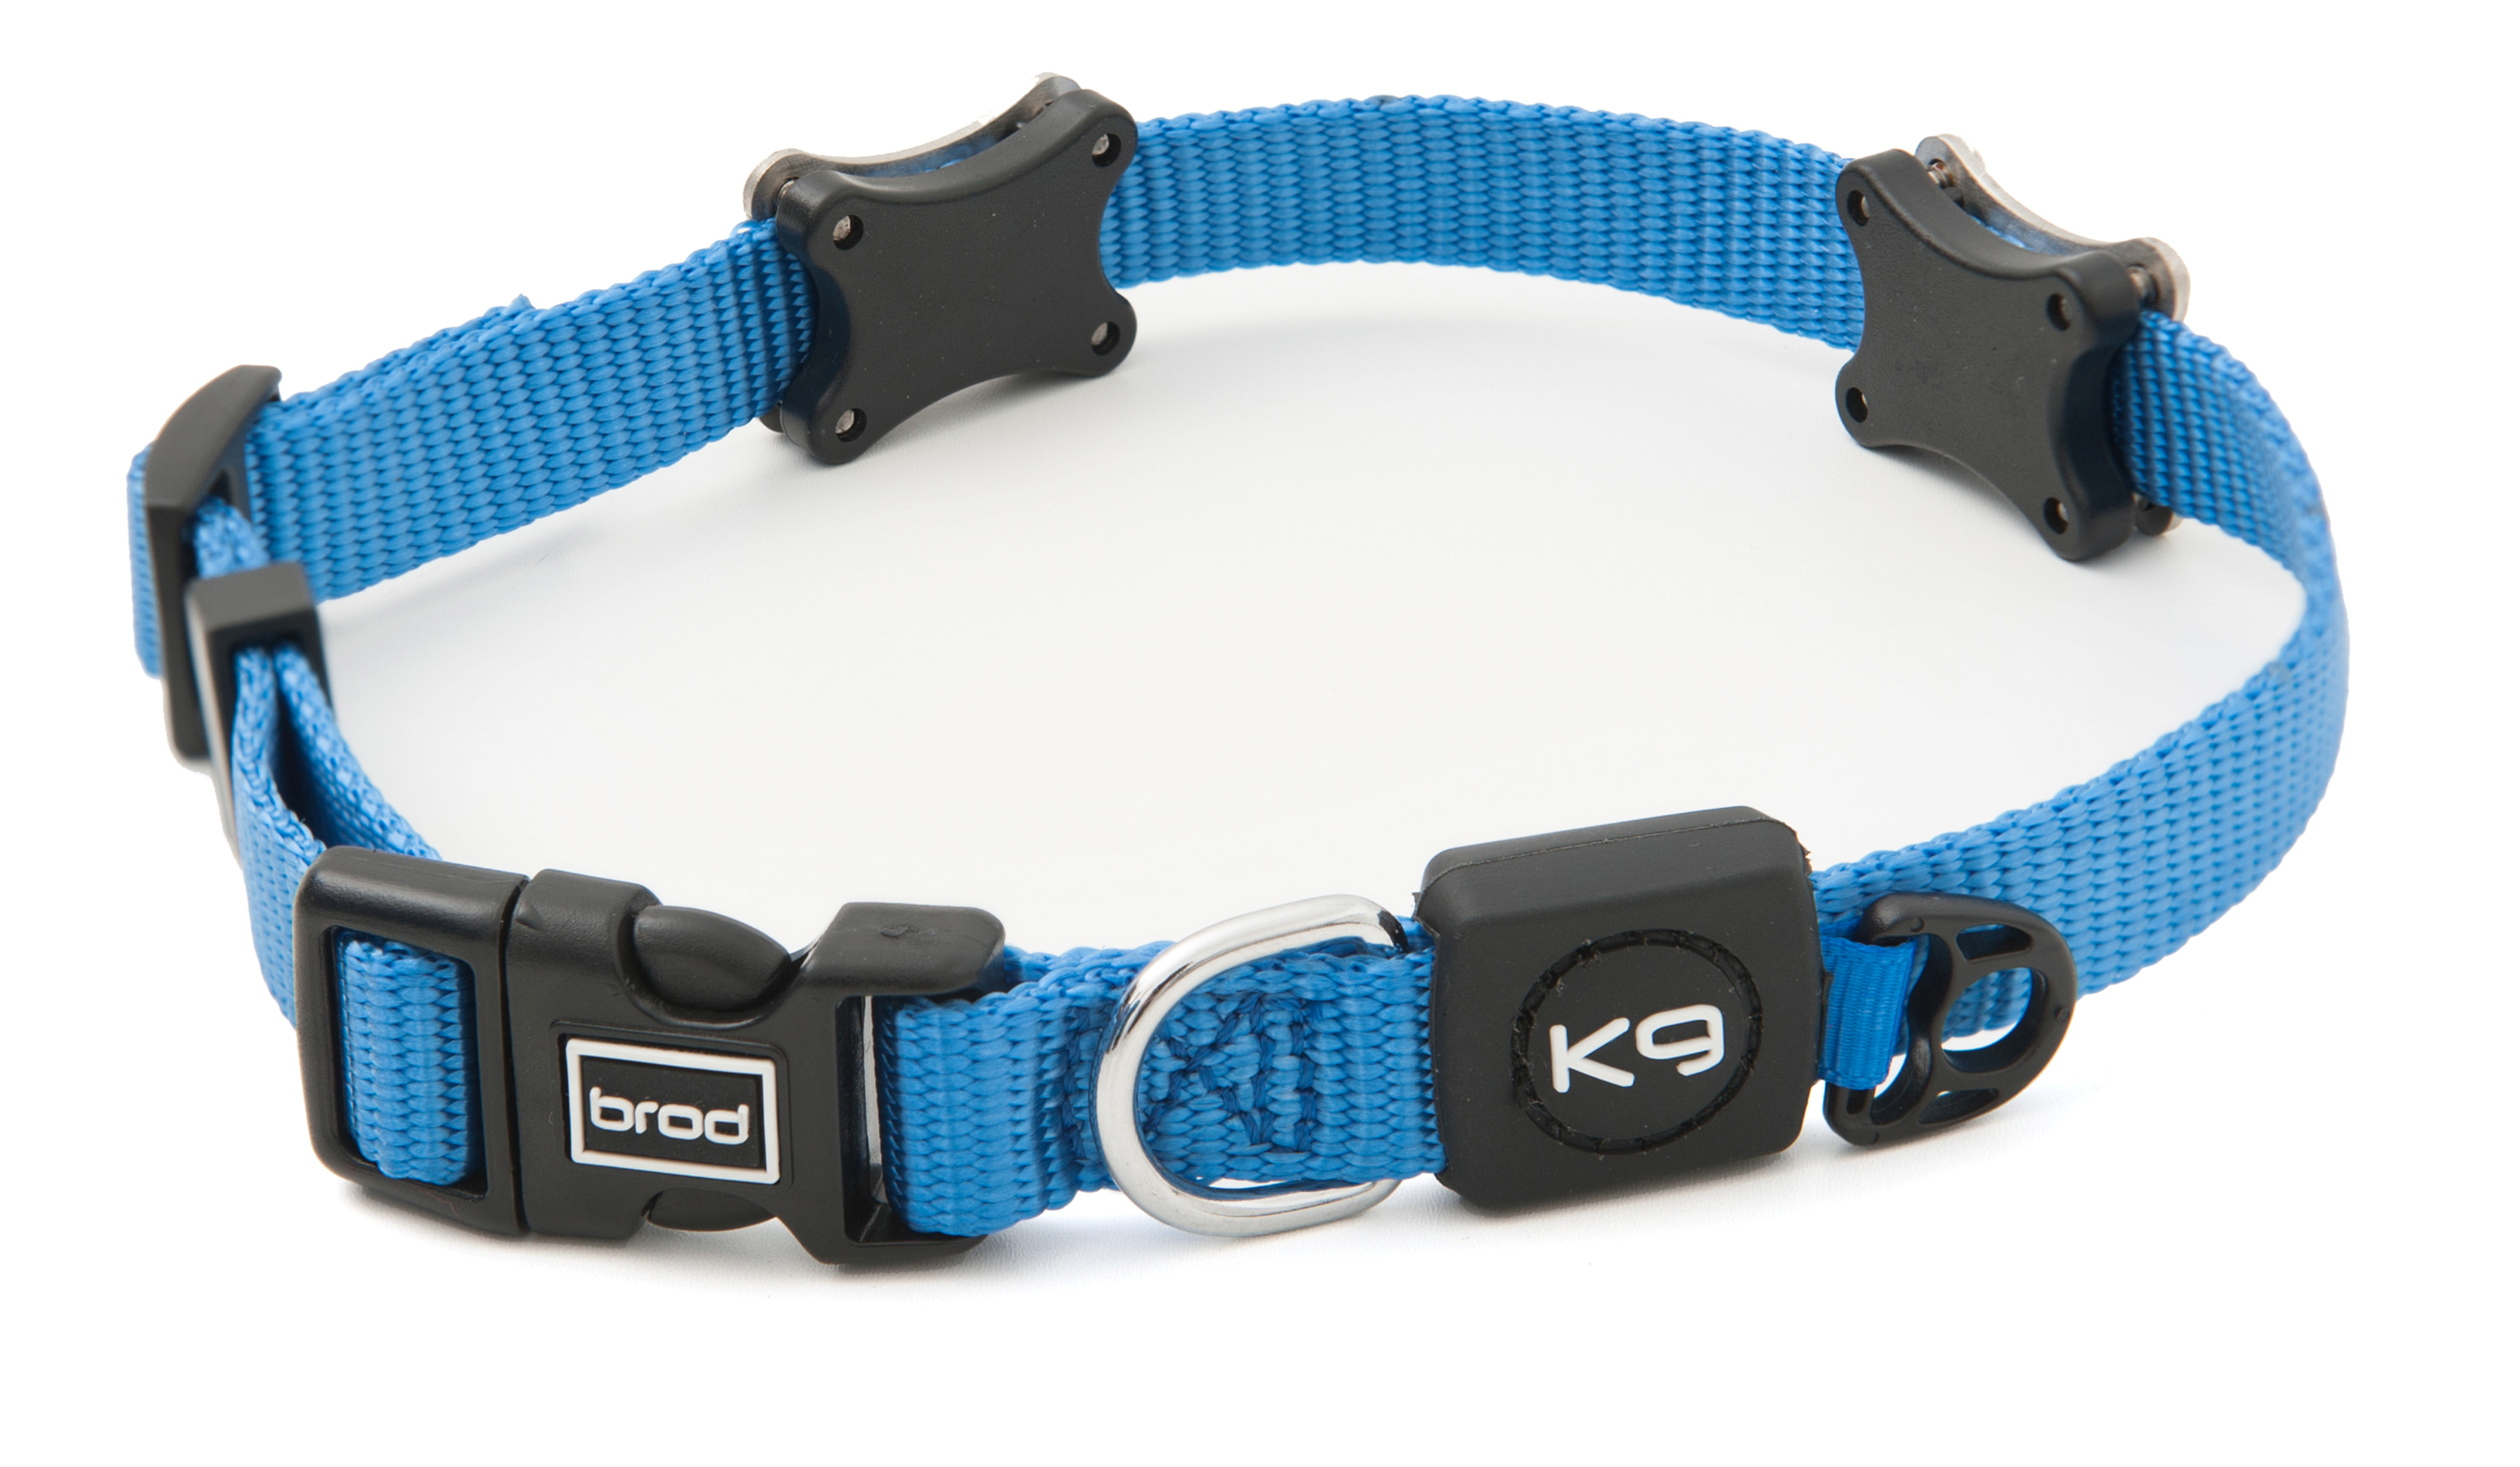 BrodPod magnetic dog therapy collar